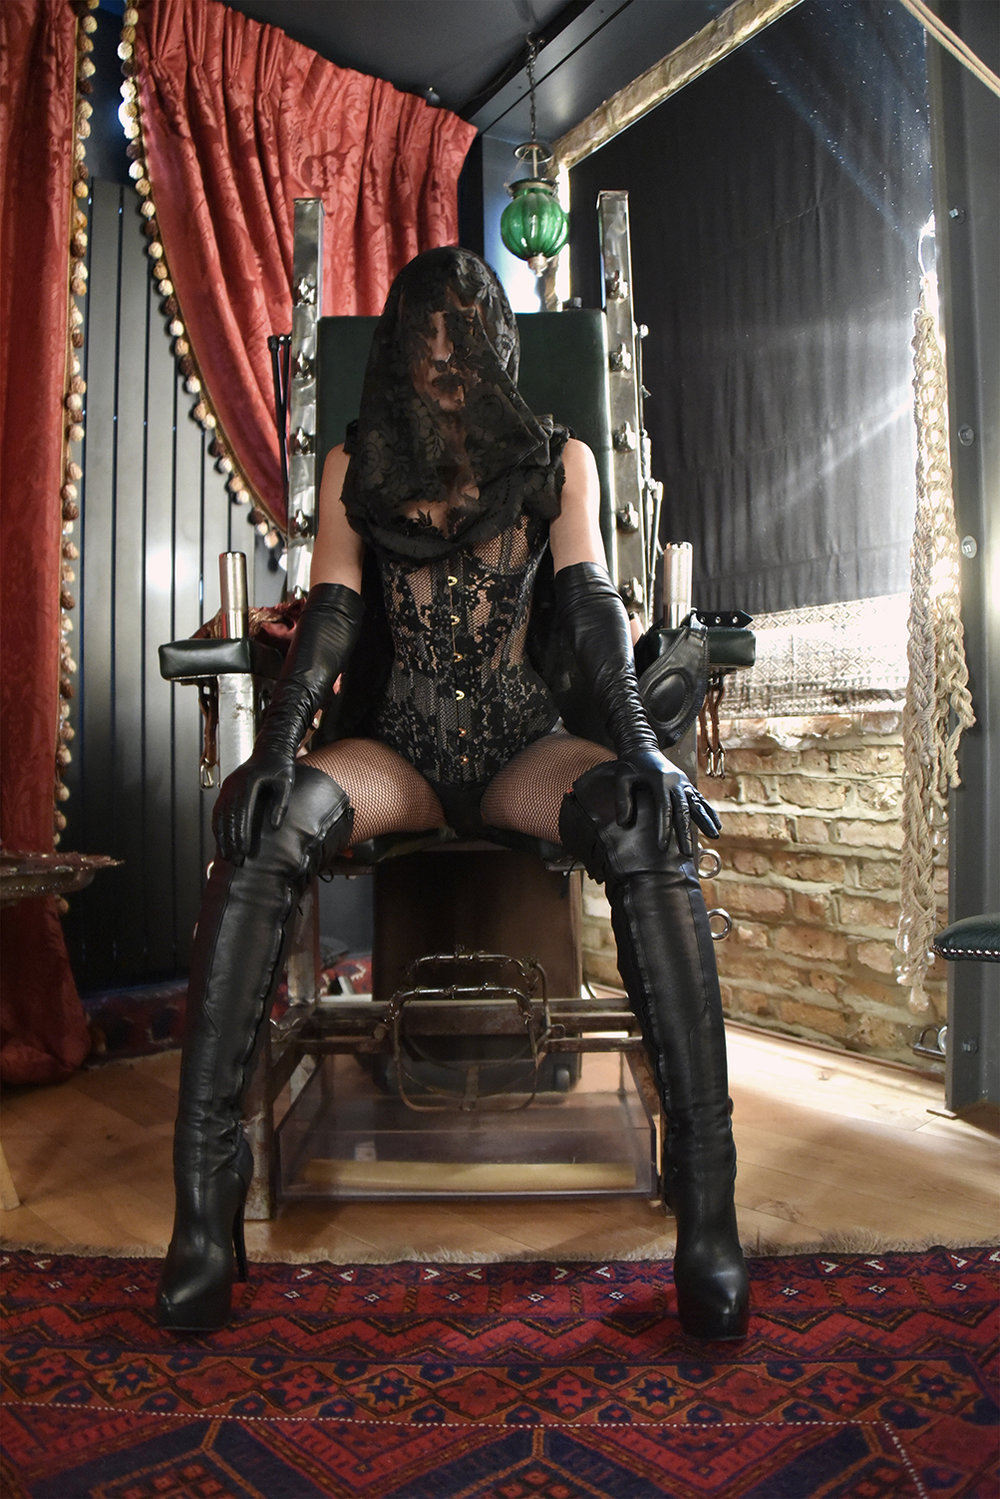 Anima by Lucina Nathanael ©Nuit d'Or 2018 (on Mistress Fiore throne)